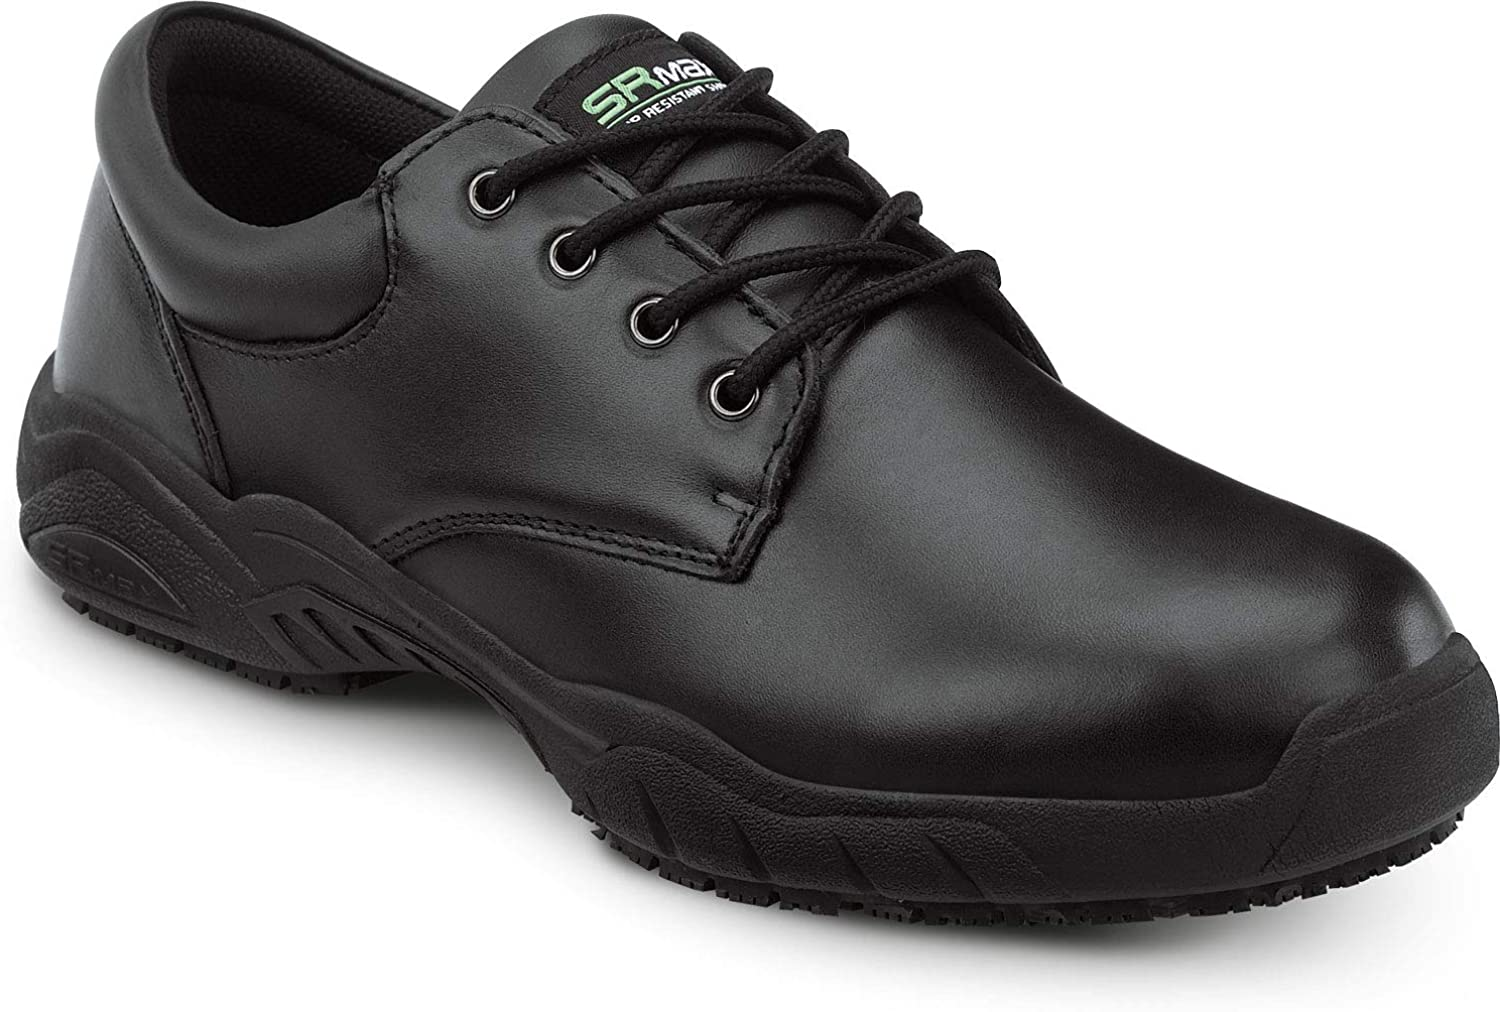 SR Max Brockton, Men's, Black, Oxford Style Slip Resistant Soft Toe Work Shoe